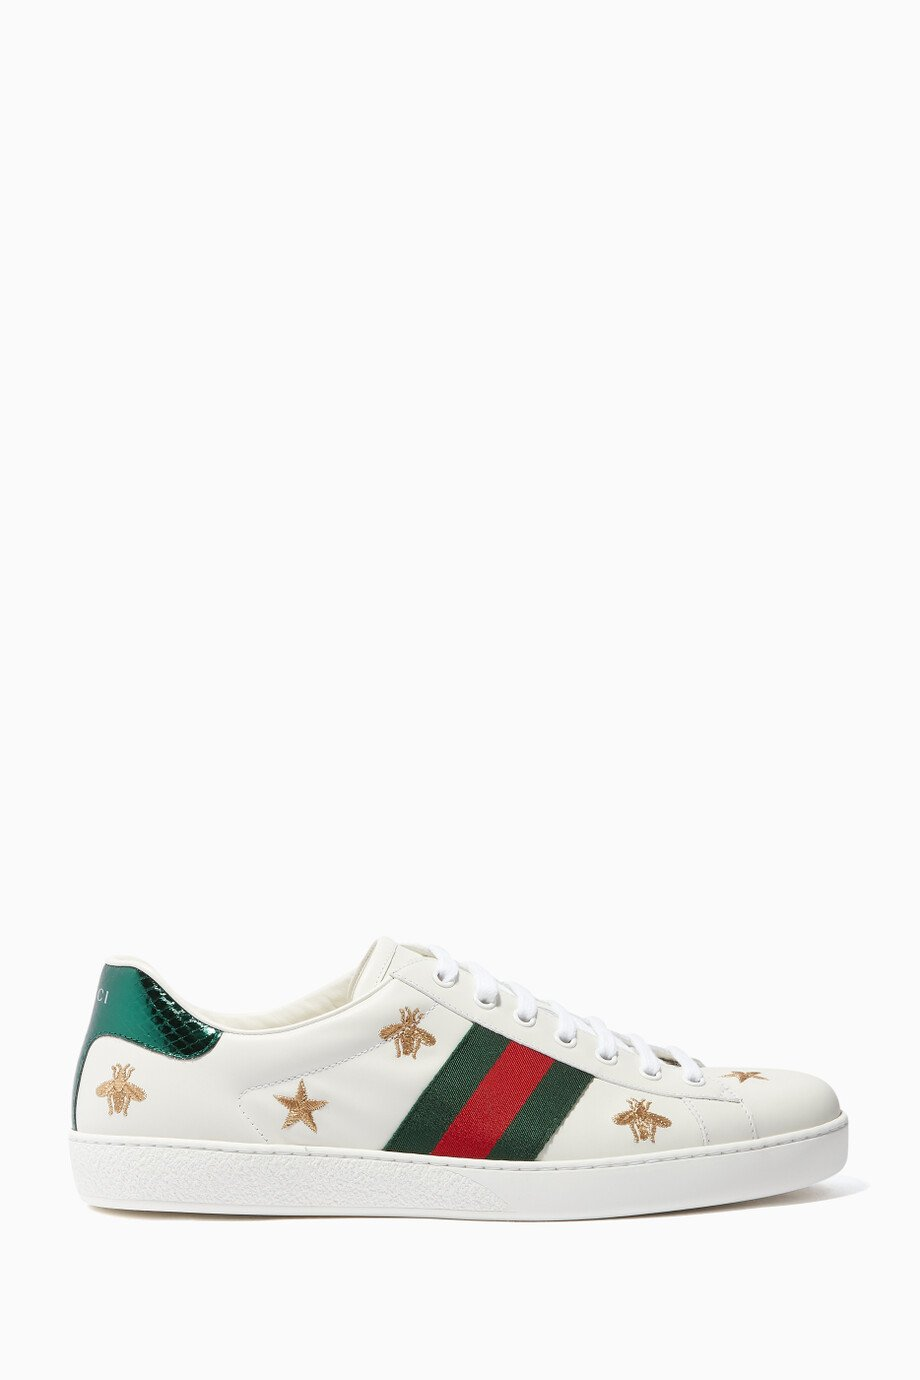 1cf911fc0 Shop Gucci White White Leather Ace Star & Bee-Embroidered Sneakers ...